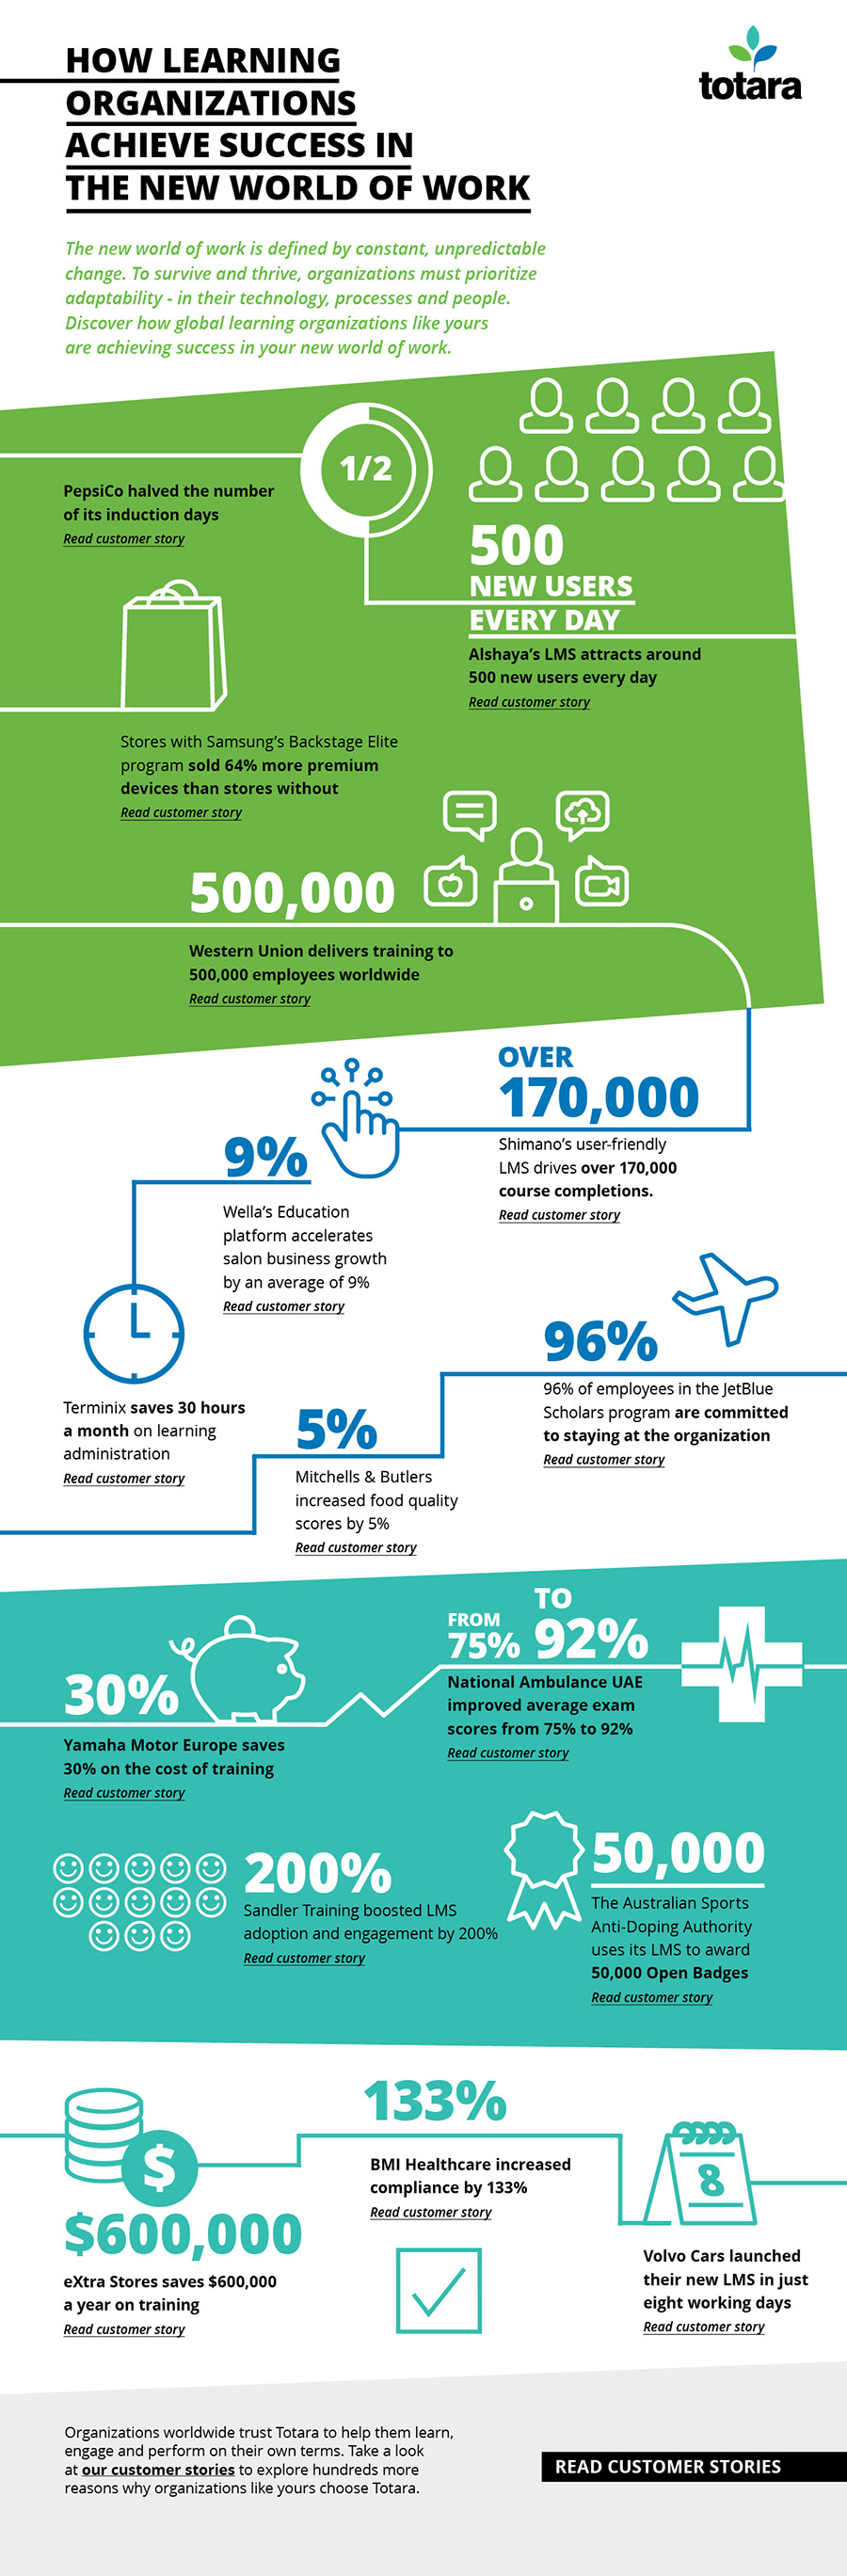 How learning organizations achieve success in the new world of work infographic